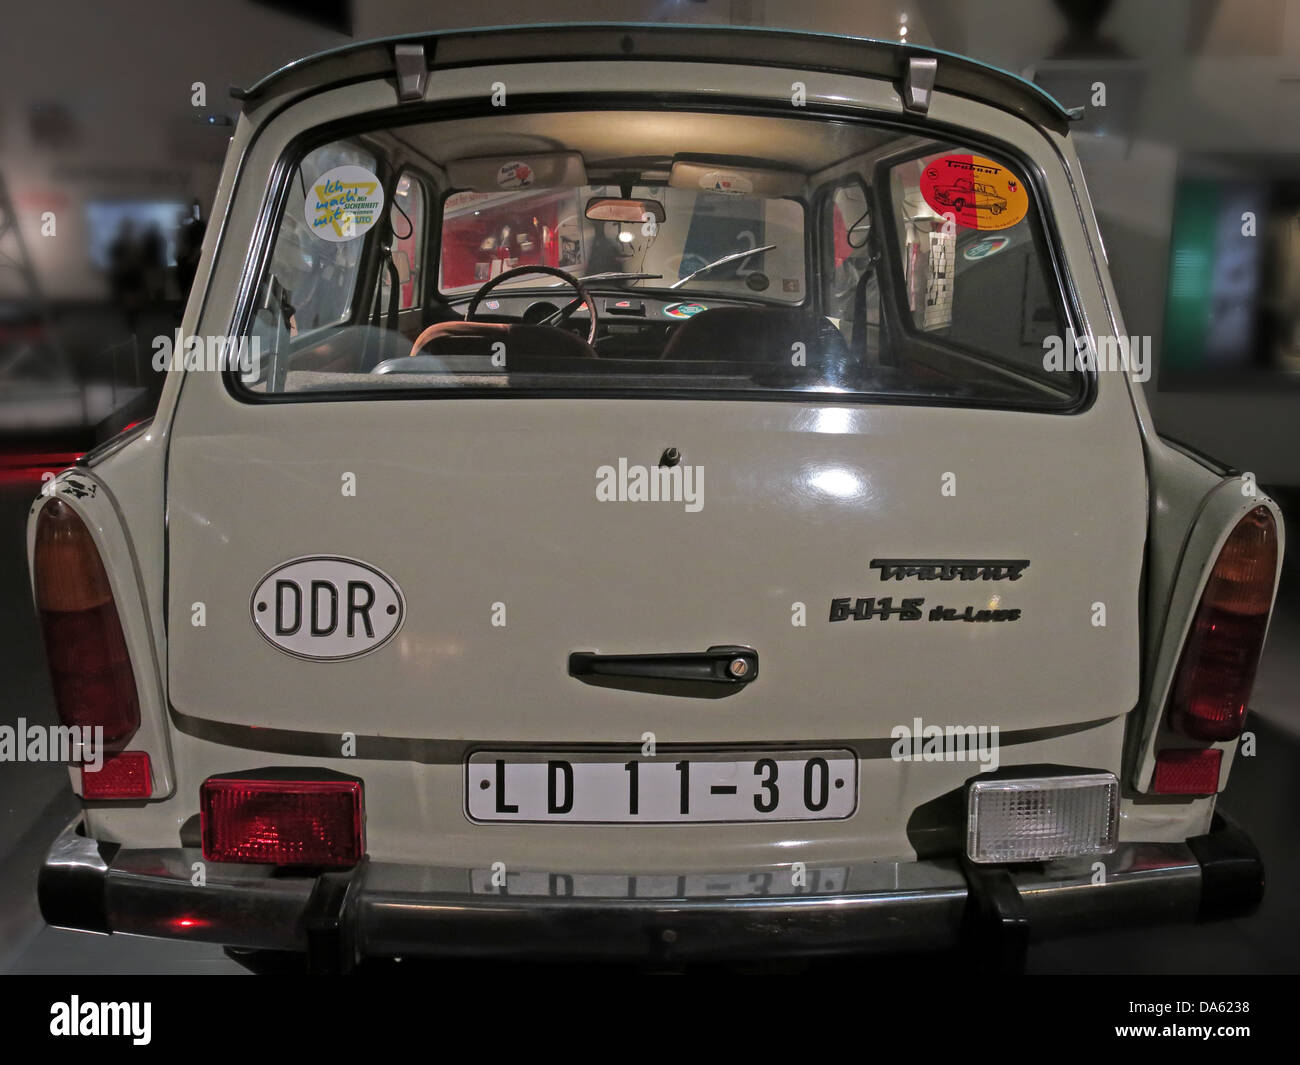 East,German,auto,maker,VEB,Sachsenring,Automobilwerke,Zwickau,in,Zwickau,Saxony,common,vehicle,East,Germany,communist,blocUSSR,CCCP,poor,car,2,two-stroke,engine,two,stroke,twostroke,centralized,planning,centralised,communism,Berlin,Wall,Trabants,trendy,antique,vehicles,Trabbi,Trabi,P50,500,trail,gotonysmith 600 601,Buy Pictures of,Buy Images Of